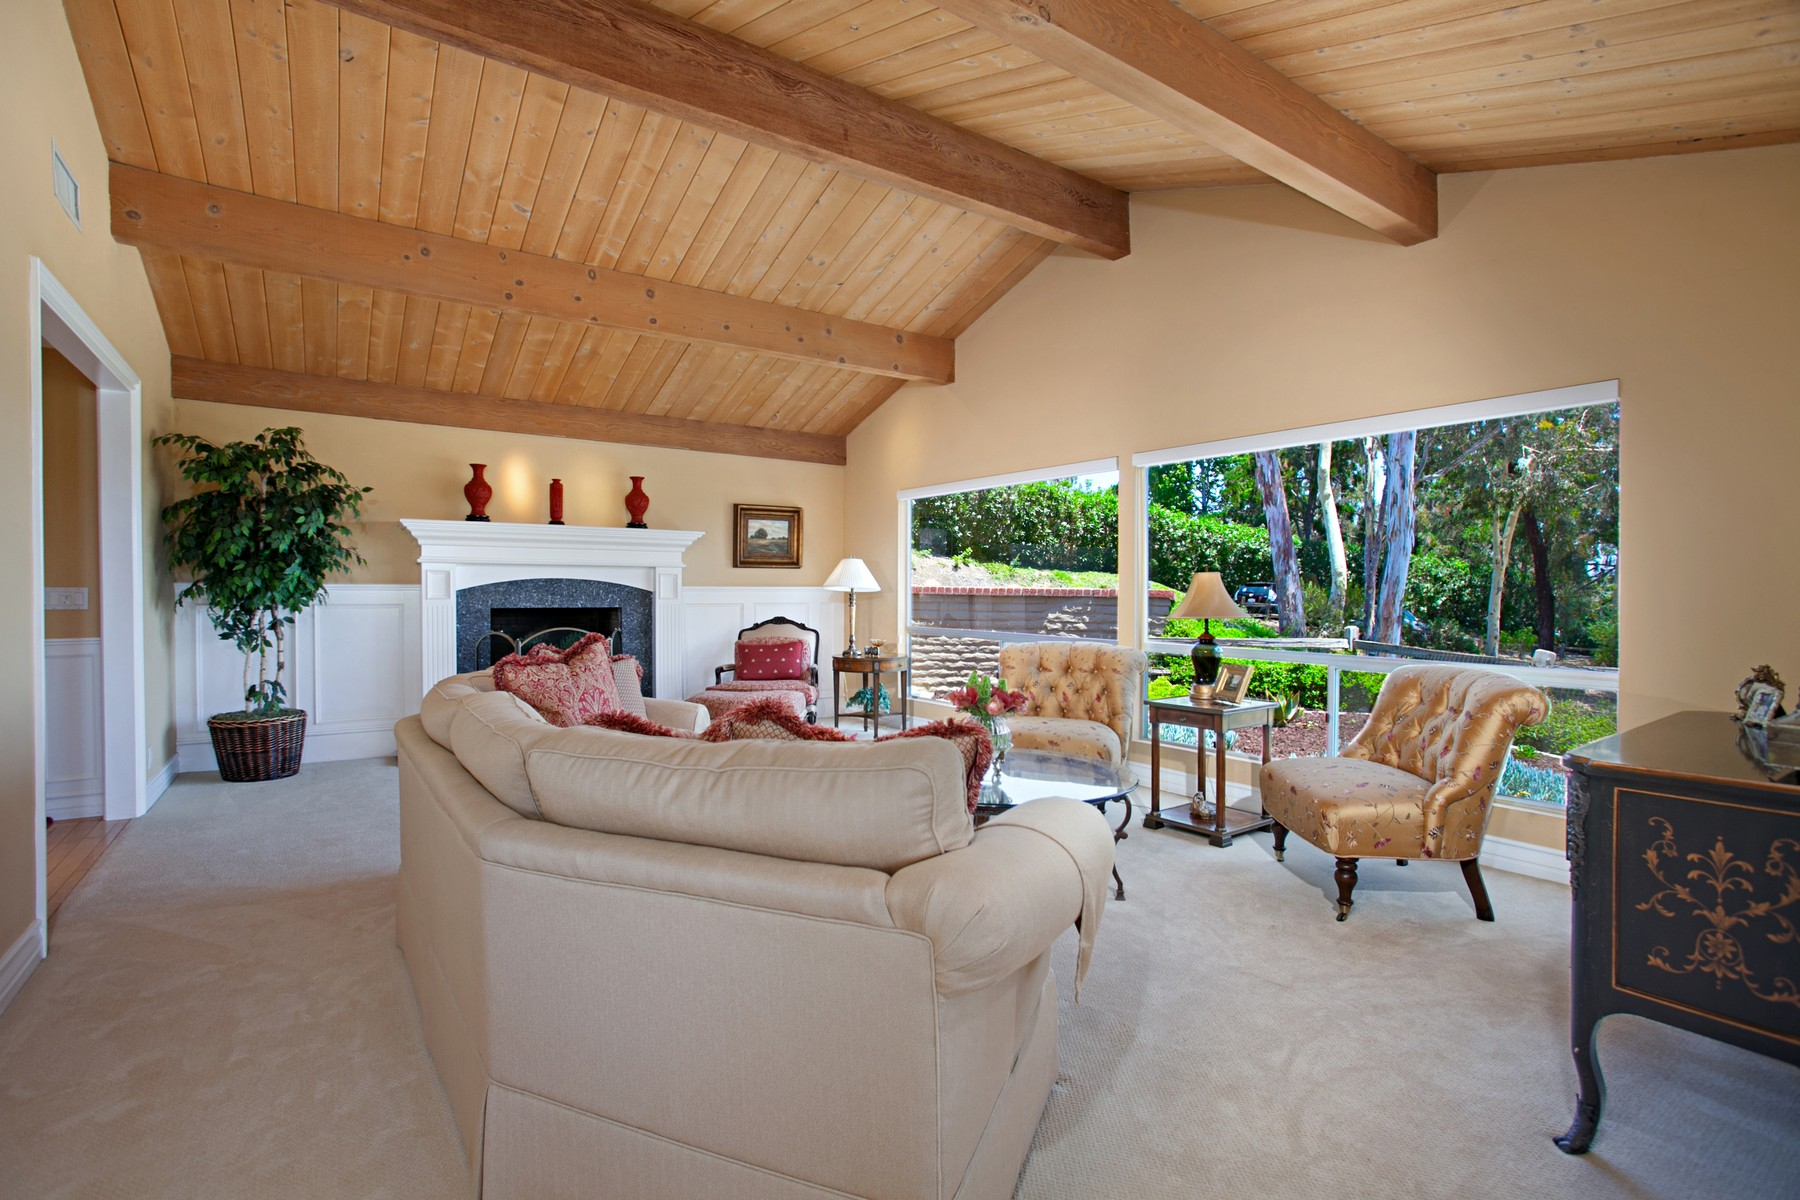 Additional photo for property listing at 16912 Reposa Alta  Rancho Santa Fe, California 92067 Estados Unidos